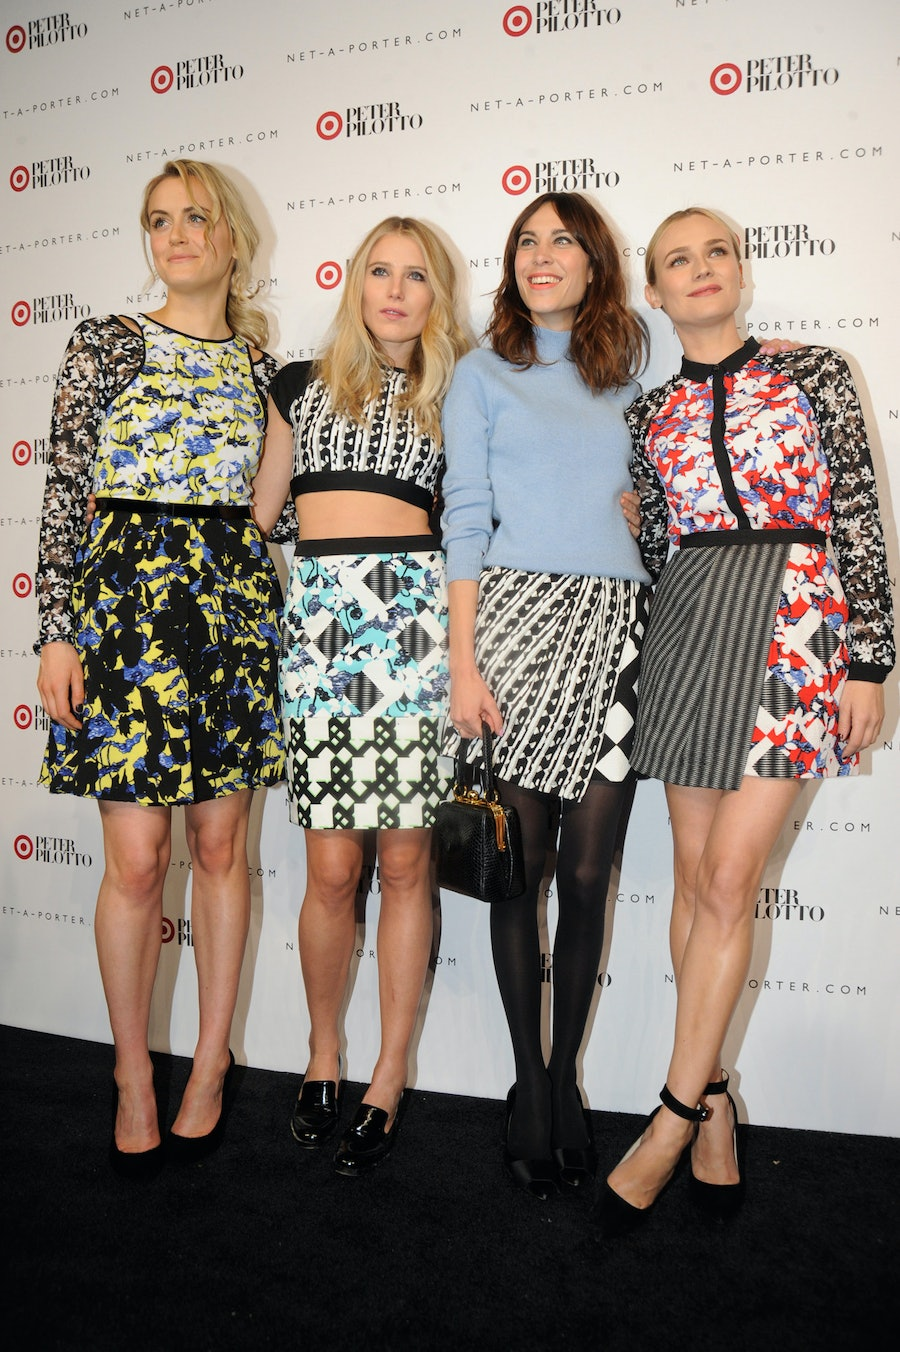 Taylor Schilling, Dree Hemingway, Alexa Chung, and Diane Kruger.